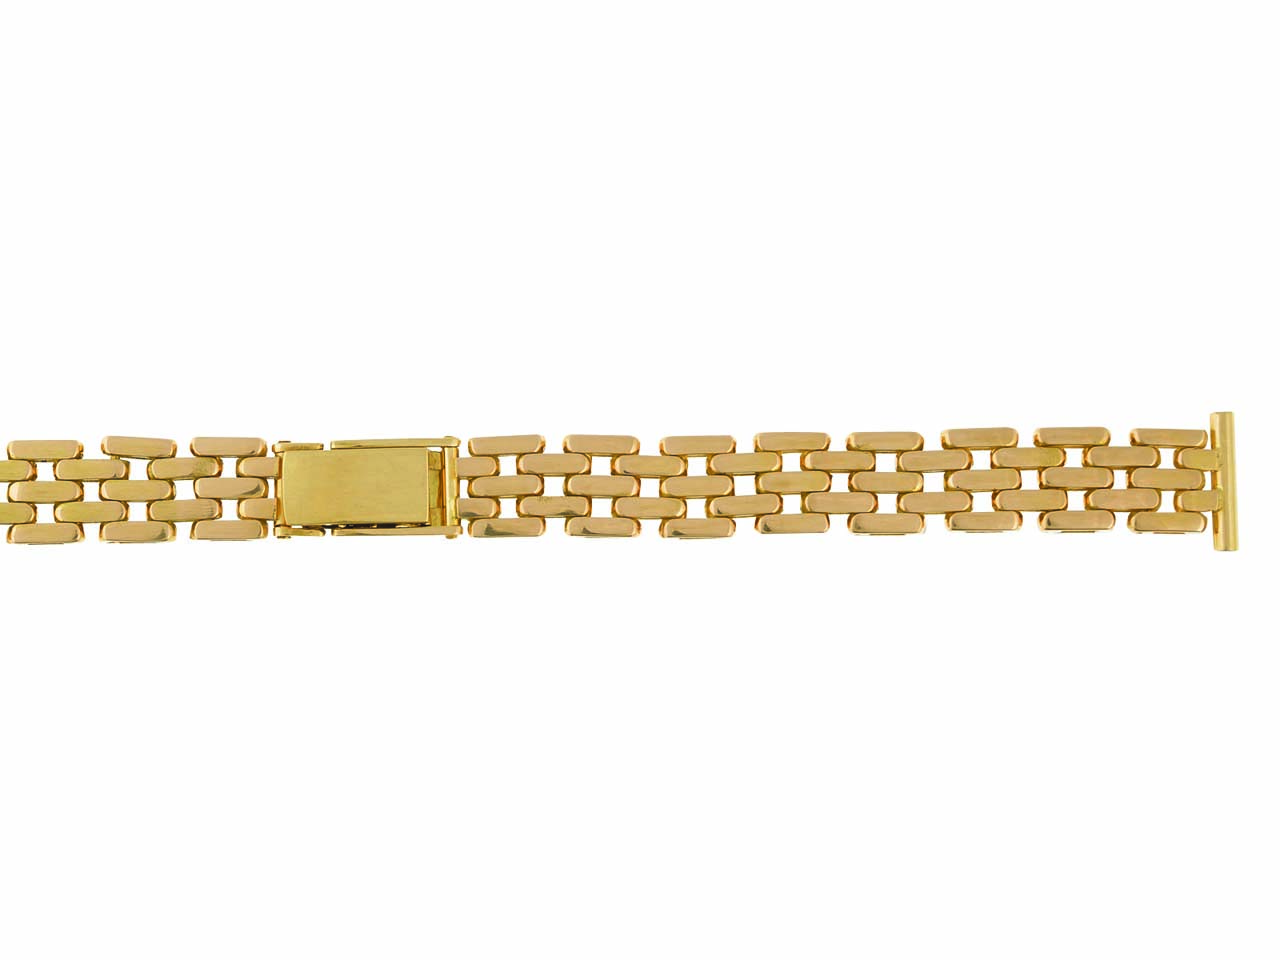 Bracelet montre grain de riz 18 mm, Or jaune 18k. Réf. 9044